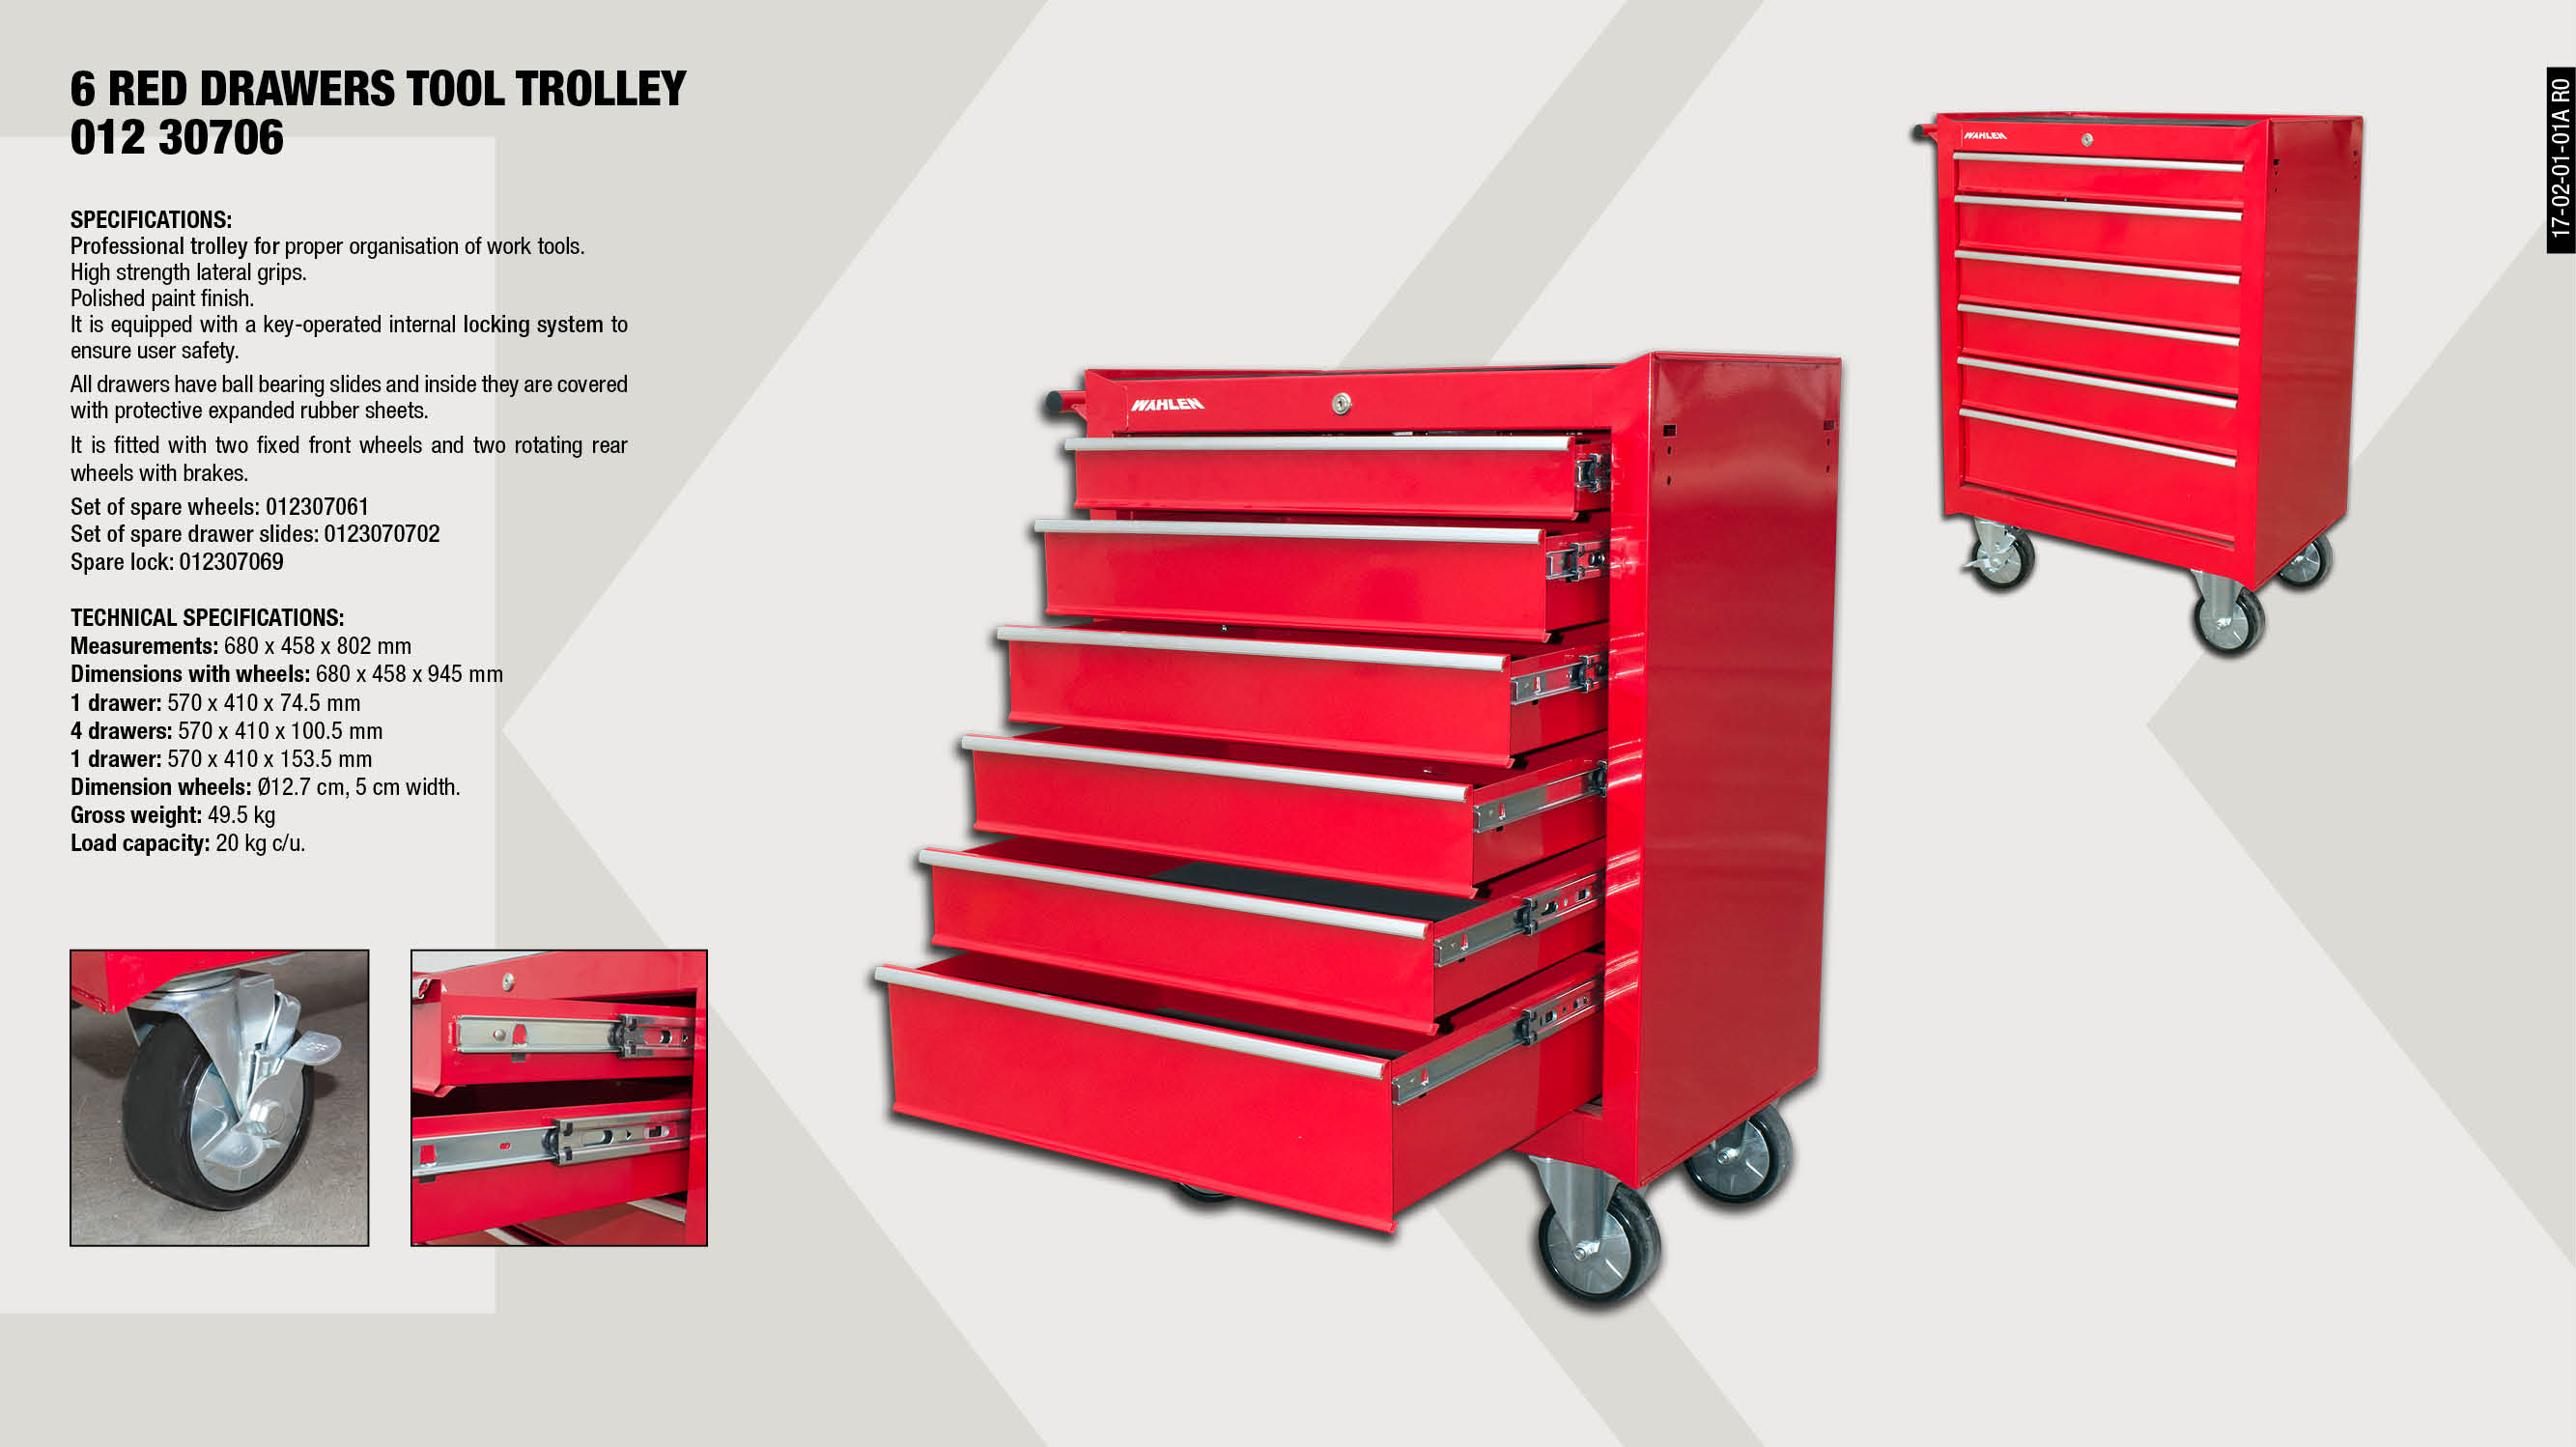 WHEEL SET CABINET 6 DRAWERS                                 ,  									LOCK FOR REF. 01230706                                      ,  									SET OF 2 SPARE DRAWER SLIDES                                ,  									6 RED DRAWERS TOOL TROLLEY                                  ,